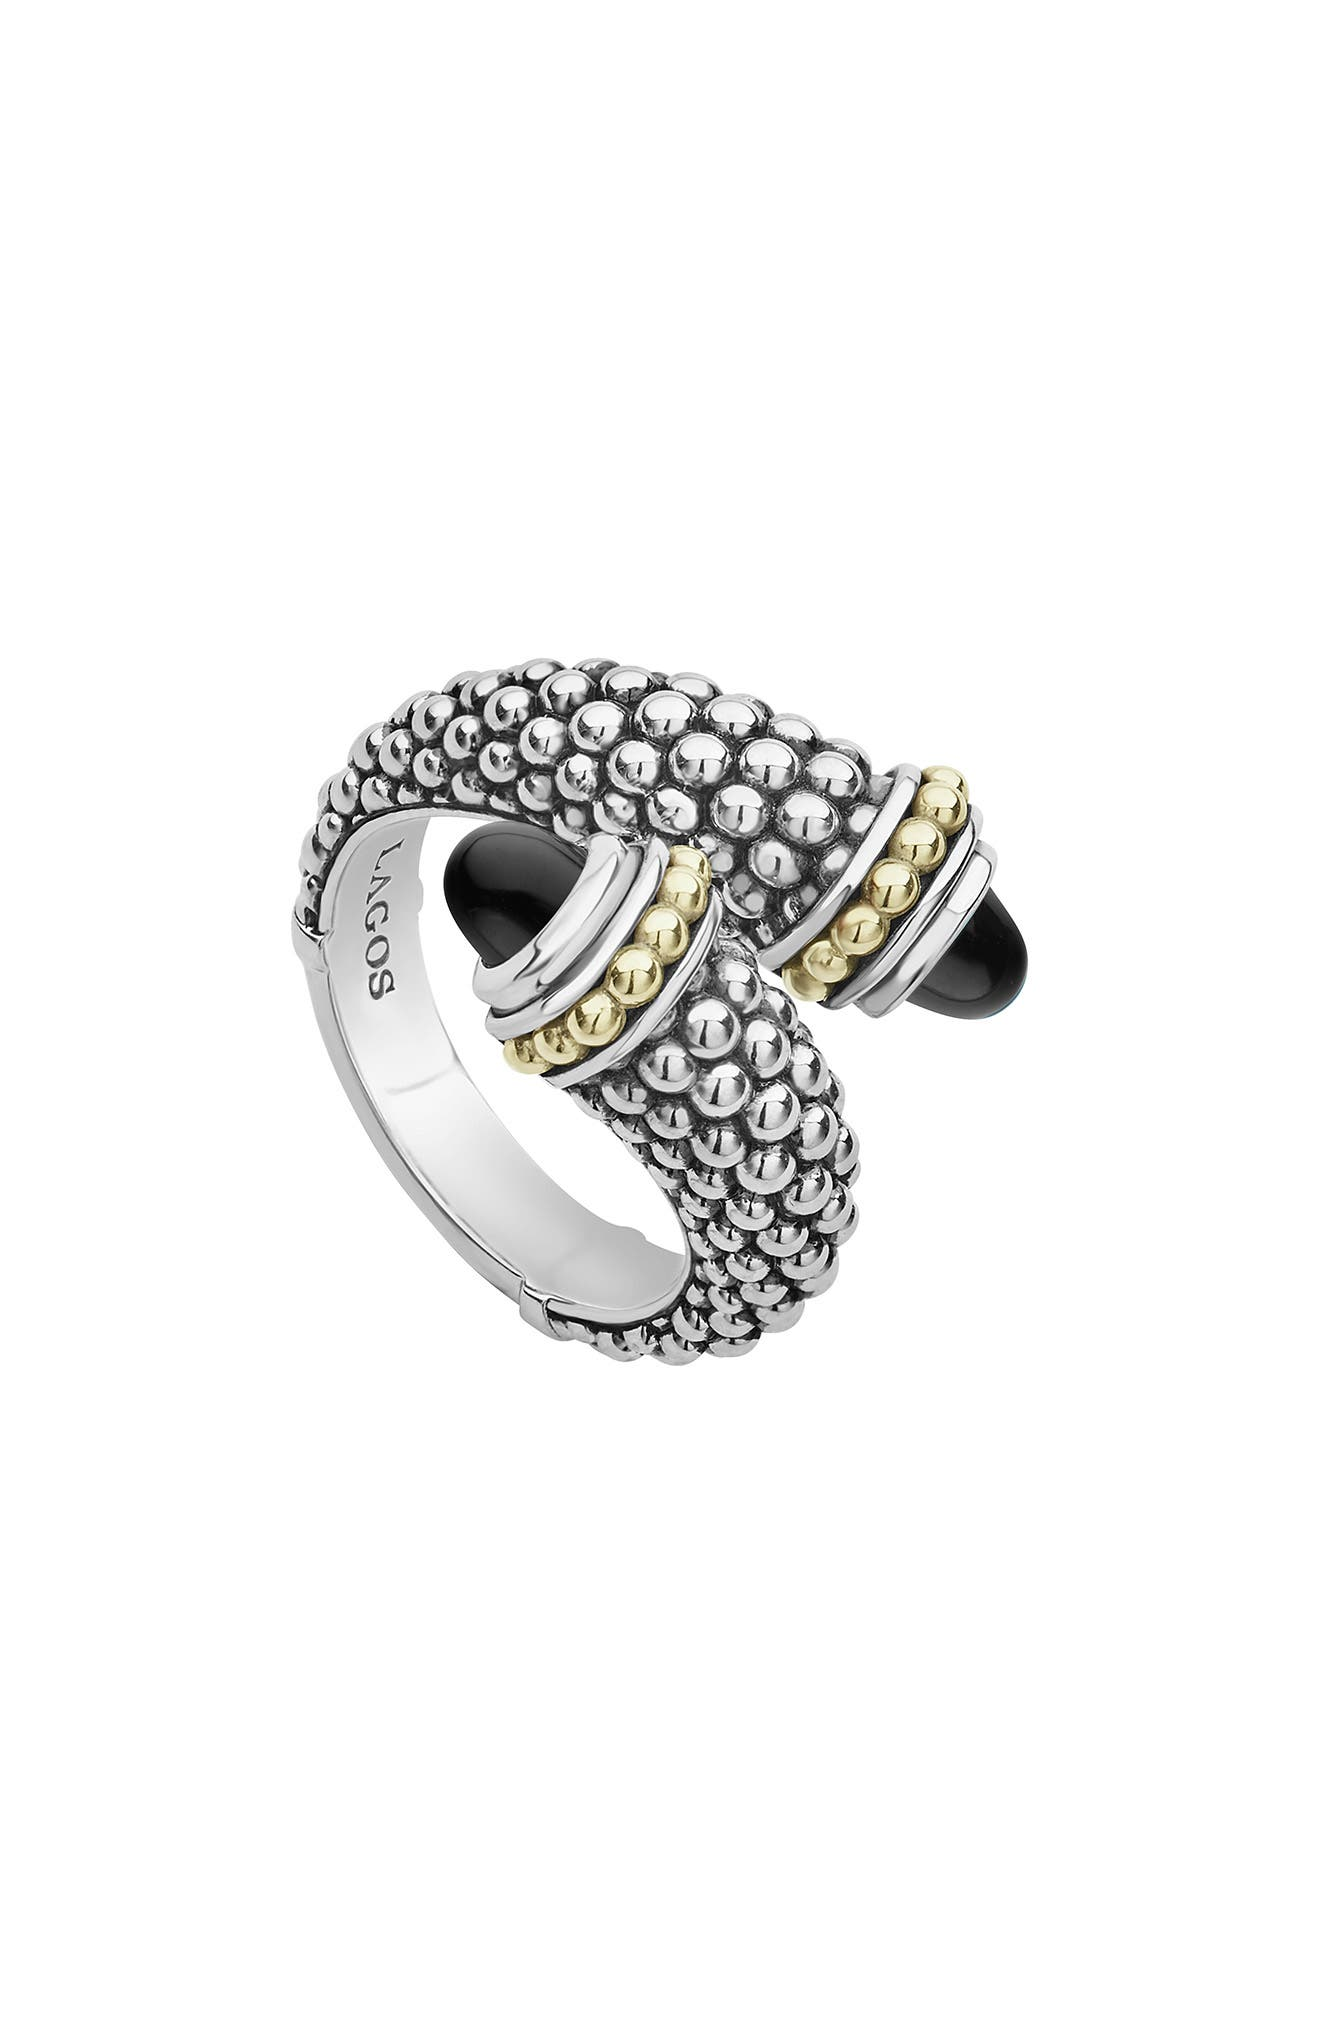 Signature Caviar Crossover Ring,                             Main thumbnail 1, color,                             SILVER/ BLACK ONYX